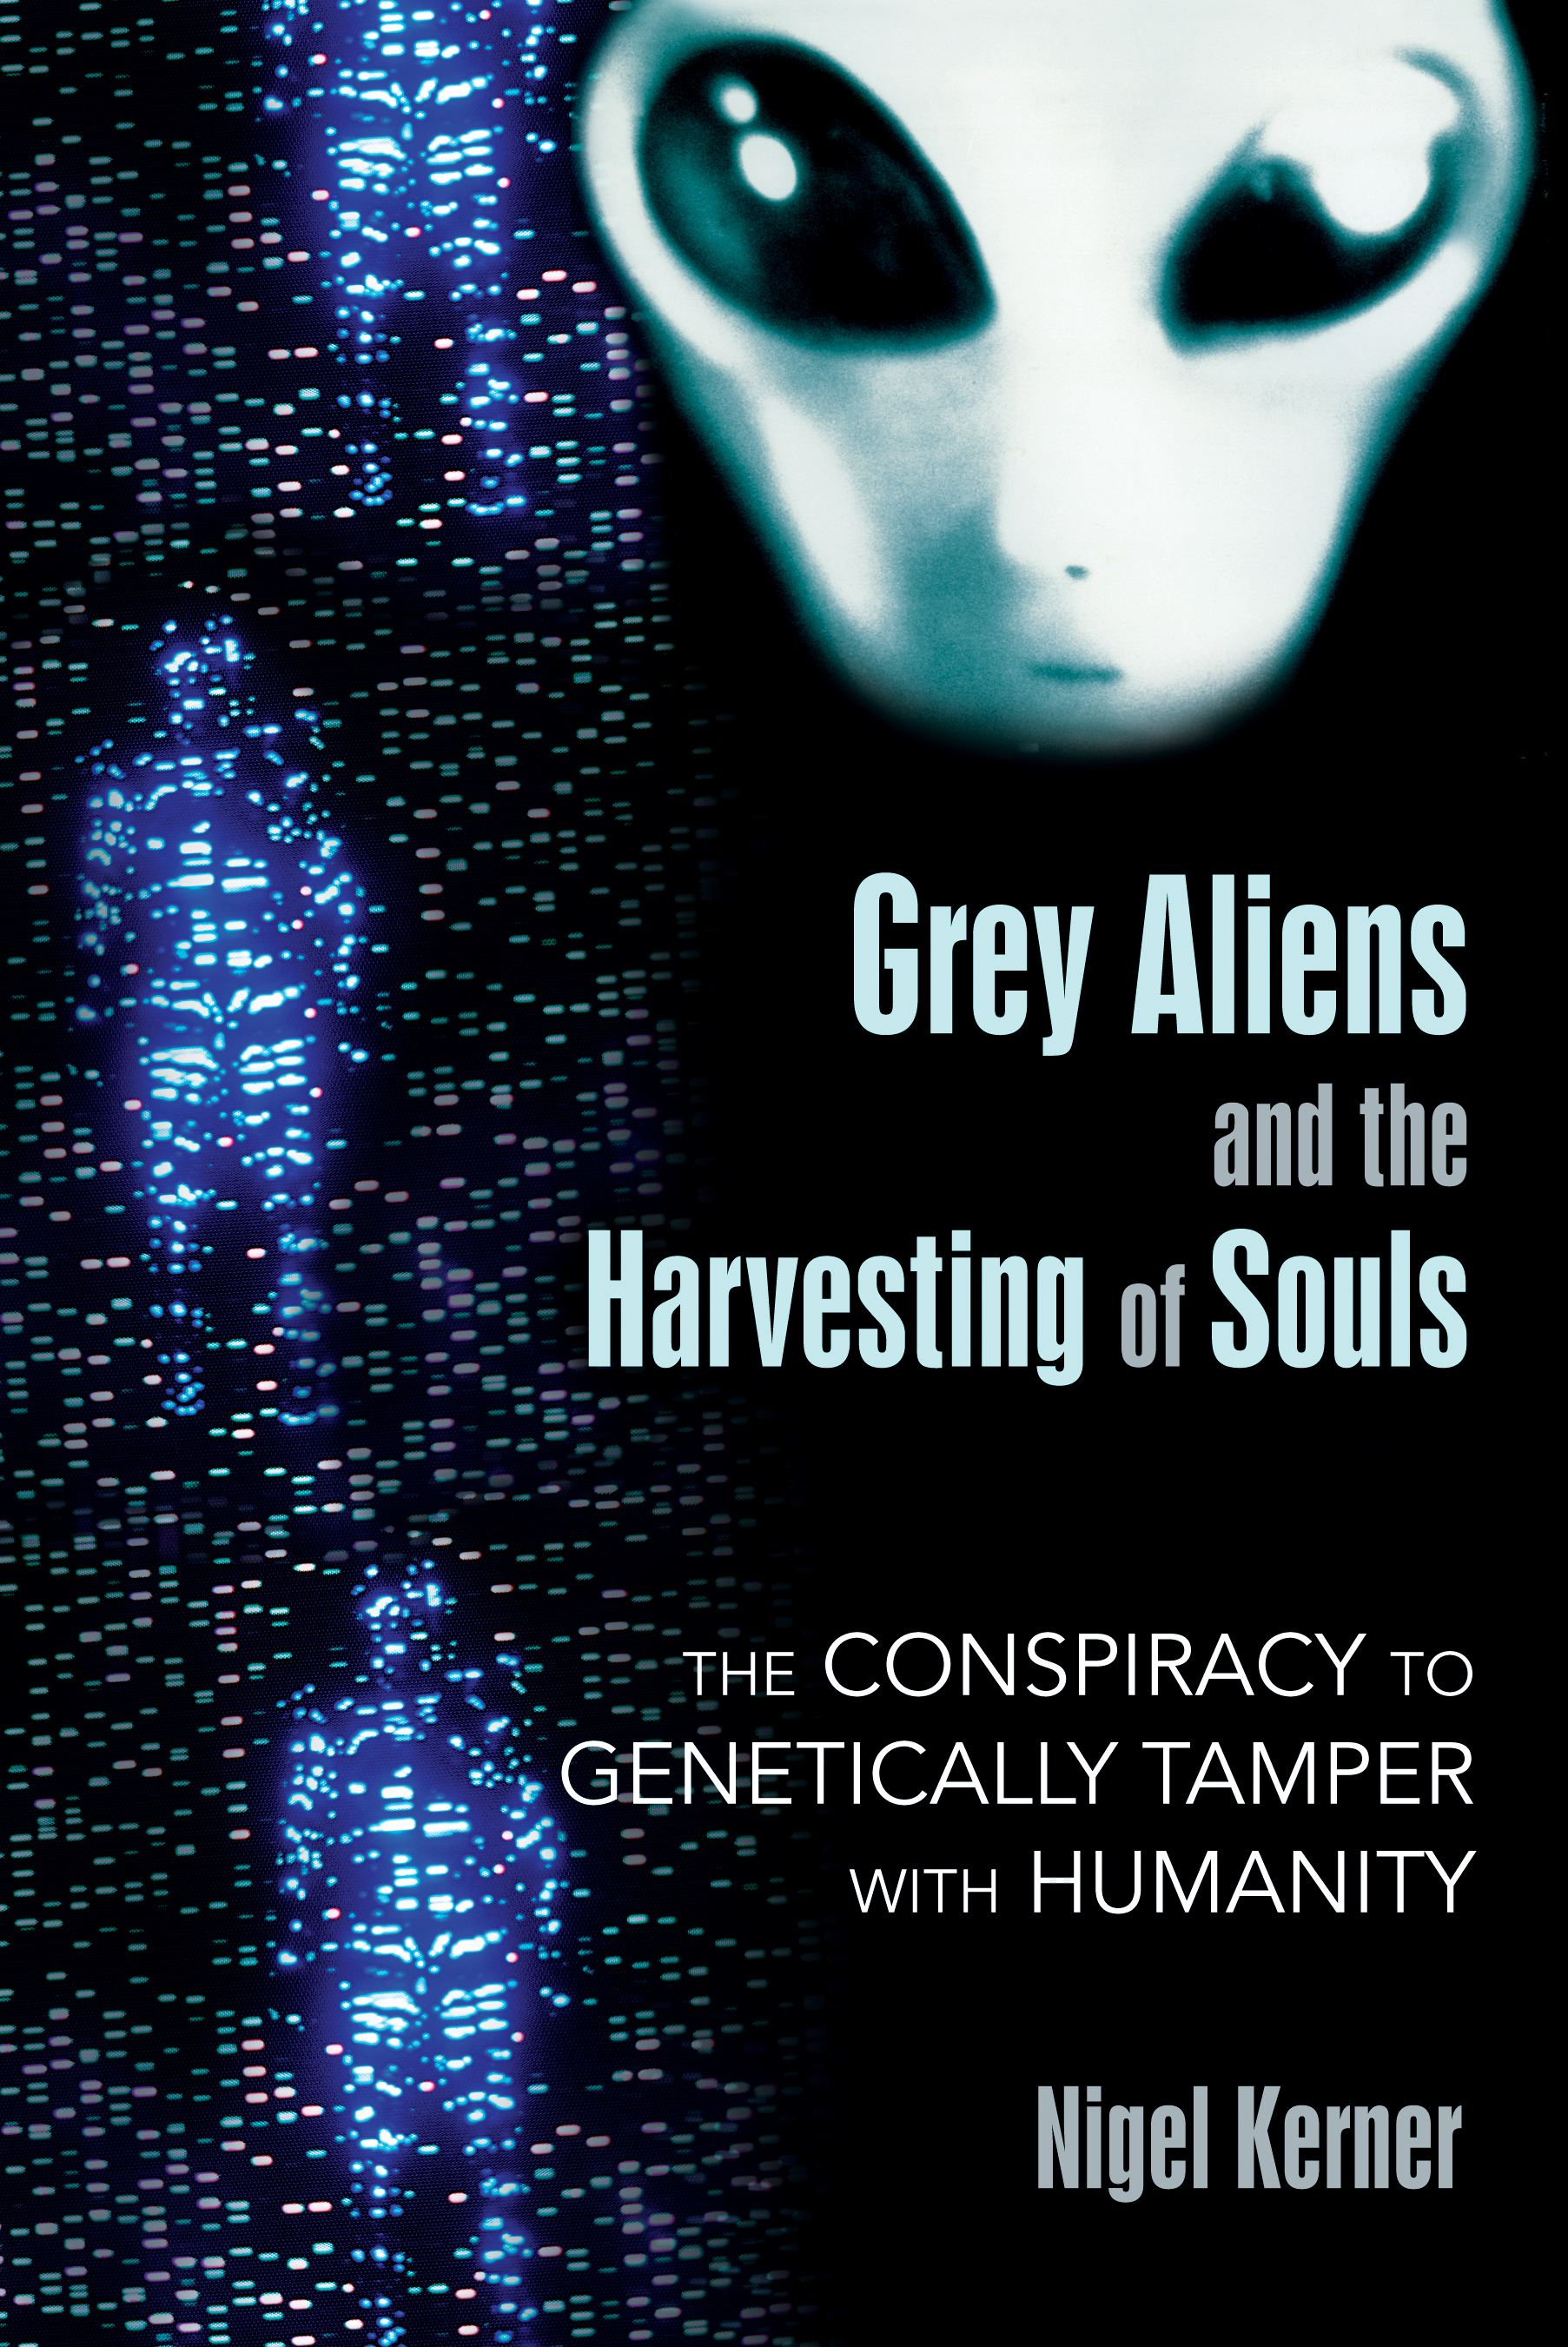 Grey-aliens-and-the-harvesting-of-souls-9781591431039_hr